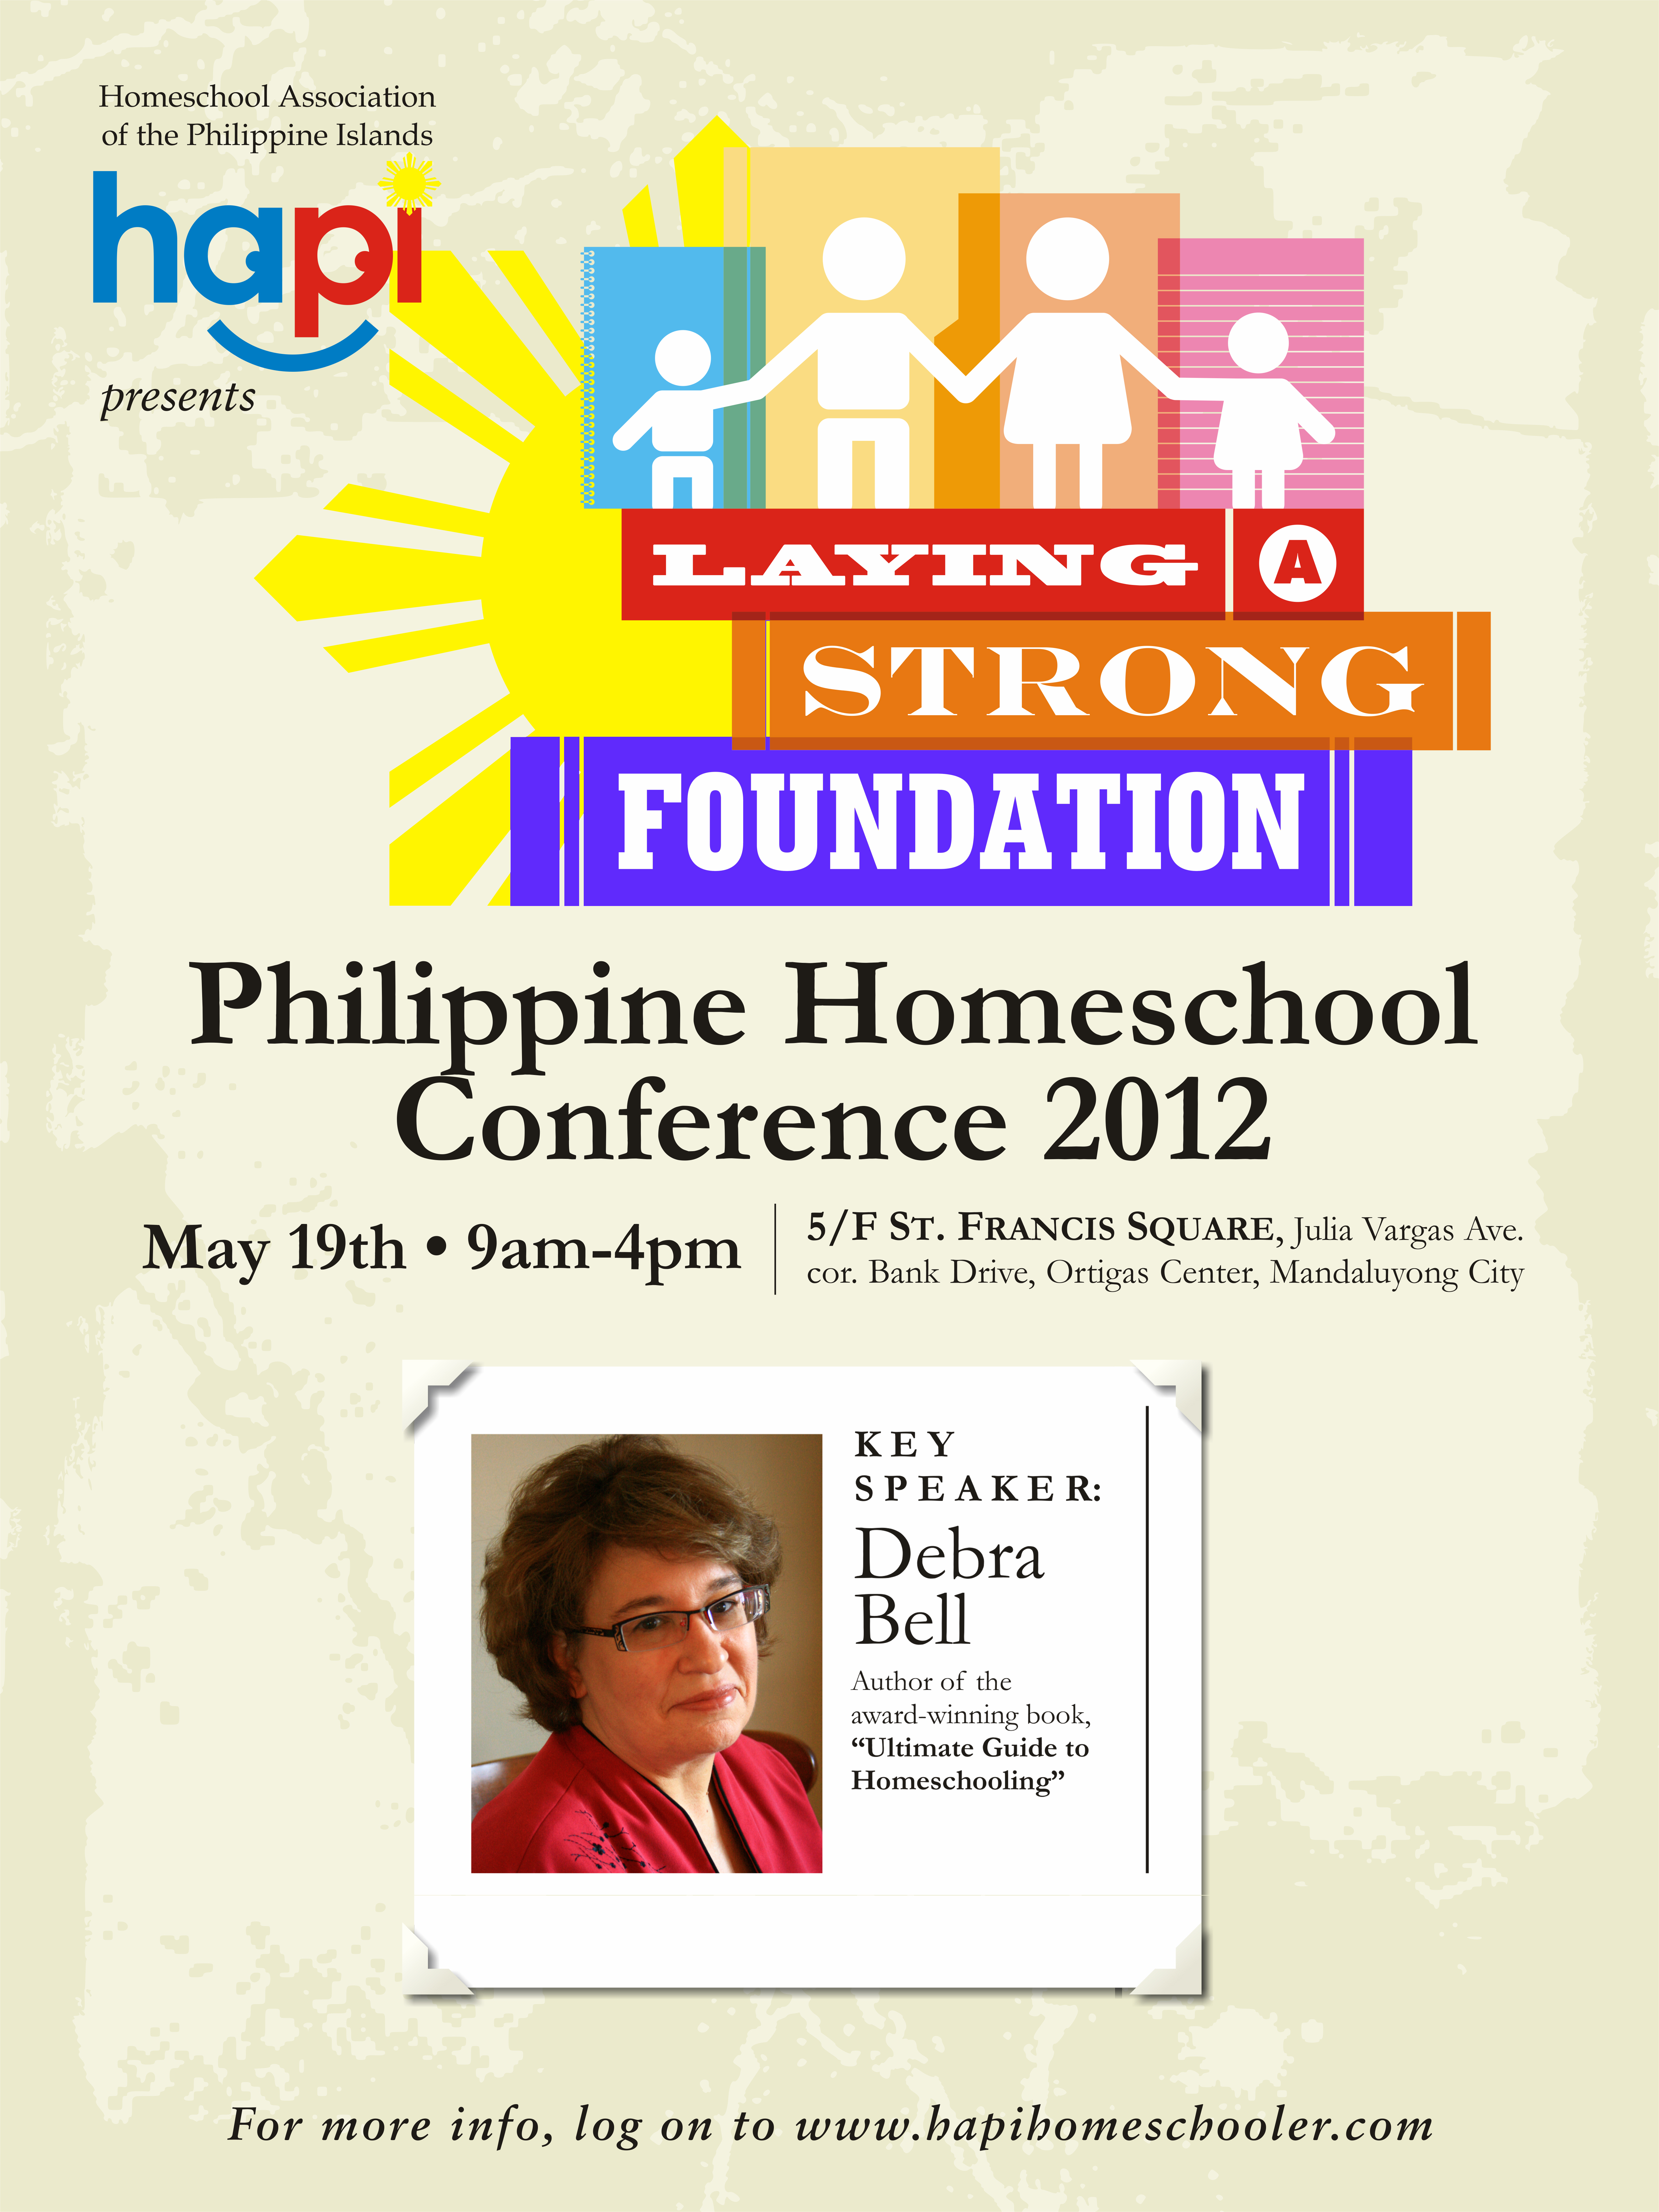 homeschooling conference 2012, homeschooling in the philippines